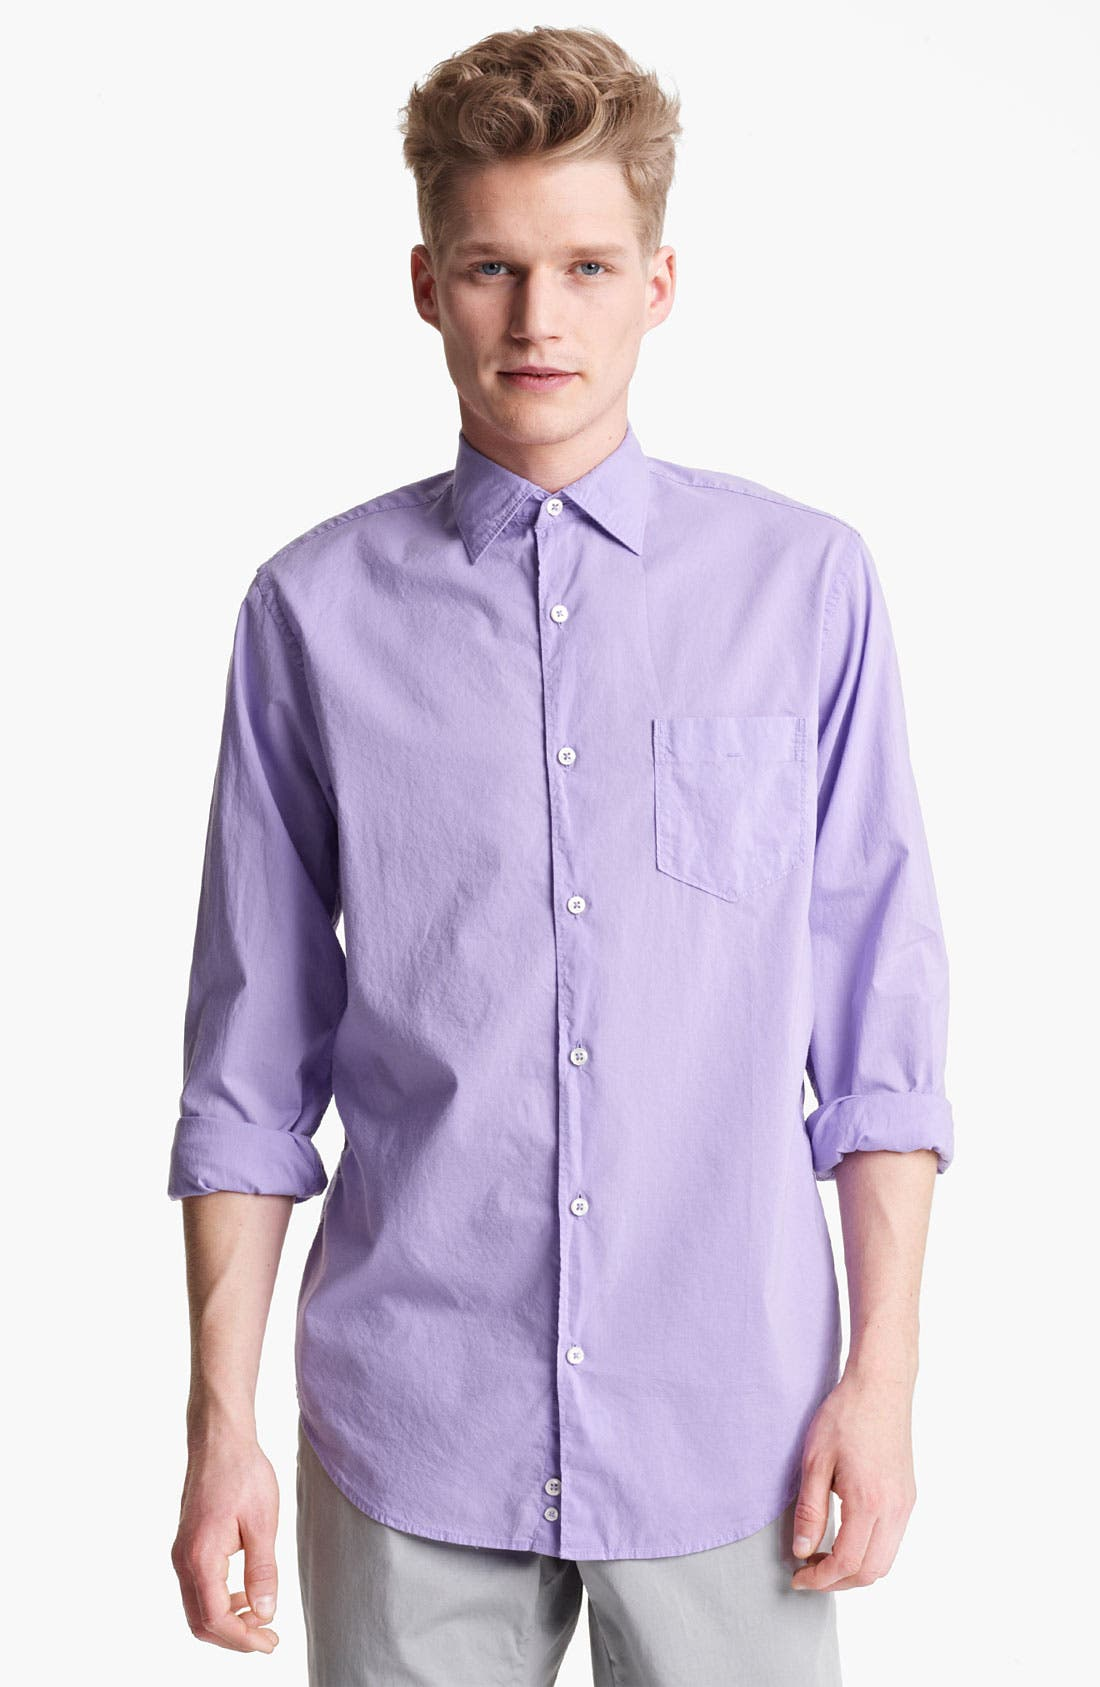 Alternate Image 1 Selected - Mason's Poplin Woven Shirt